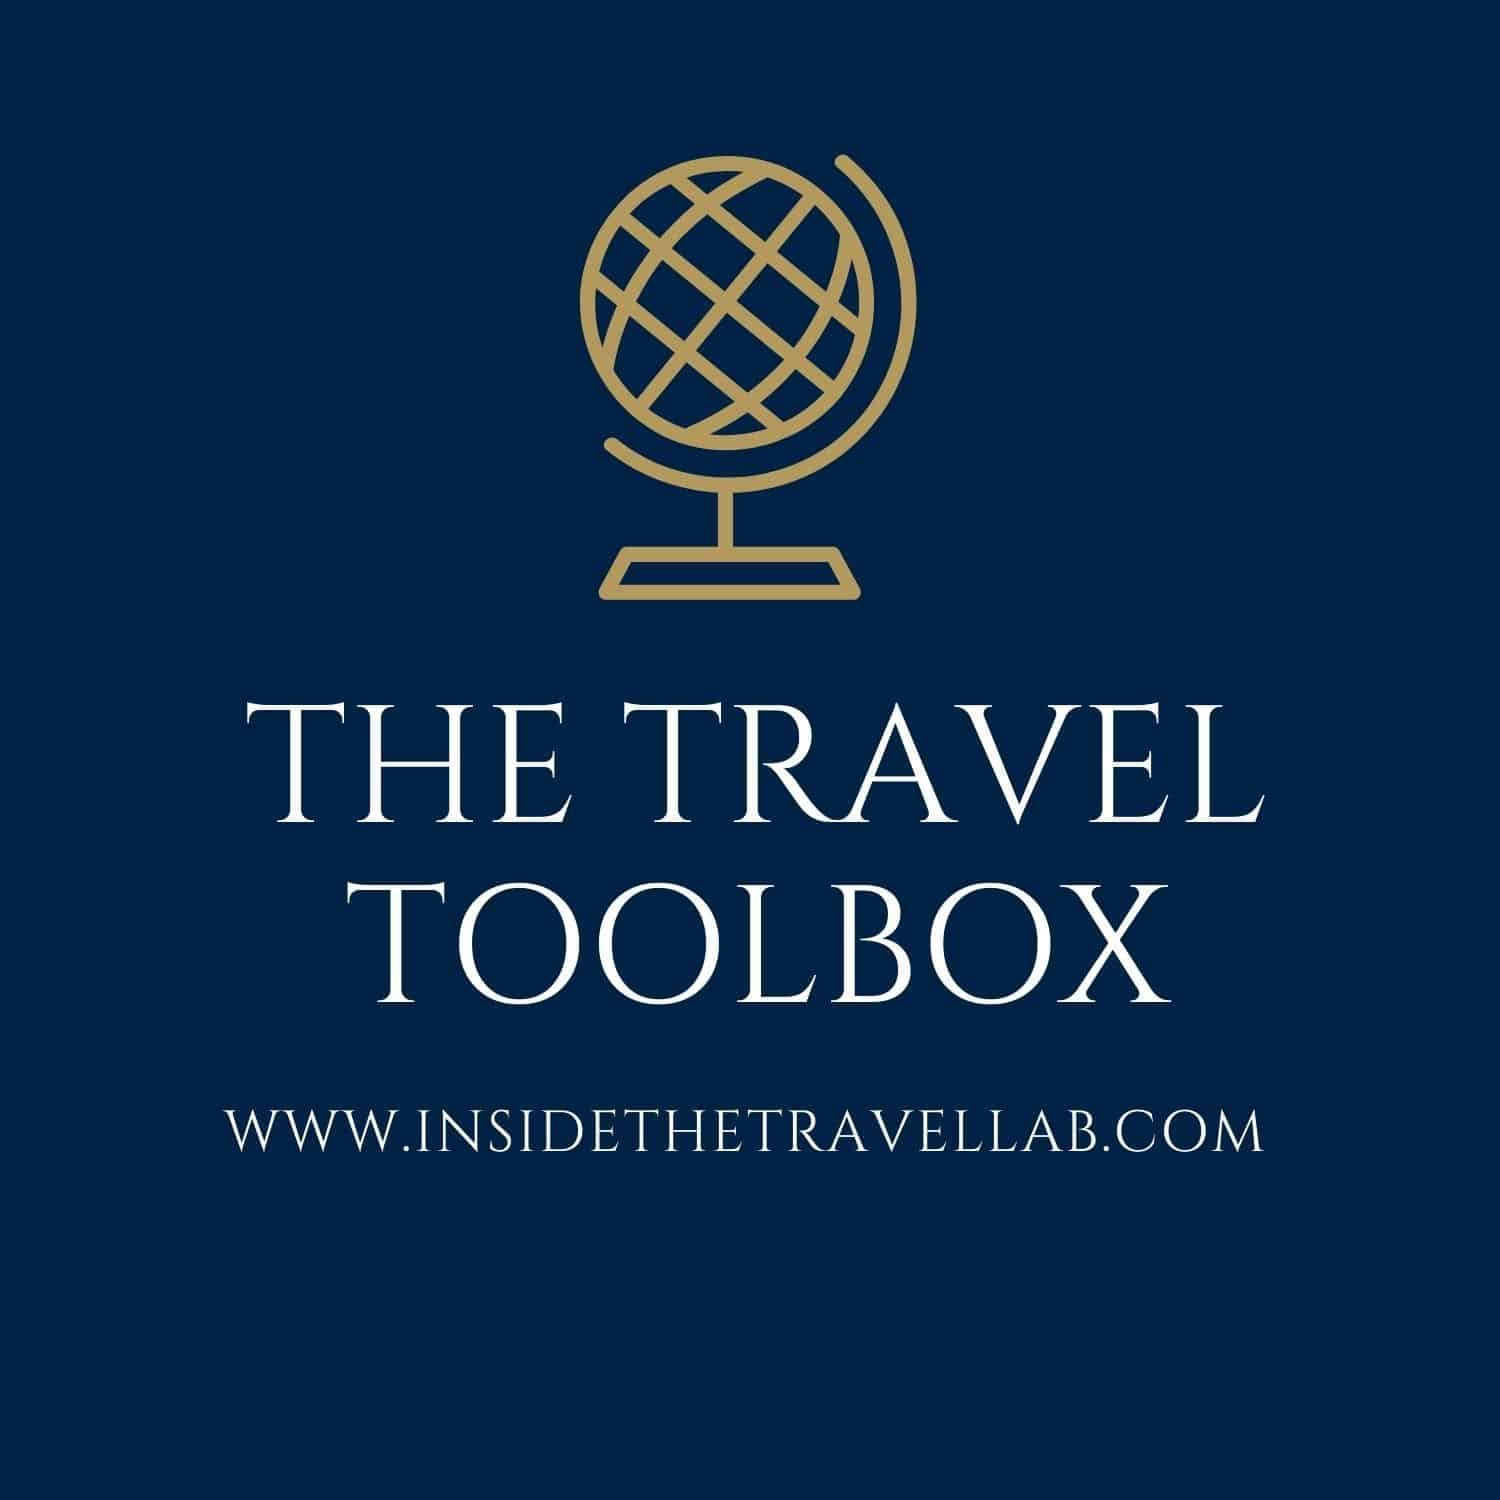 The Travel Toolbox